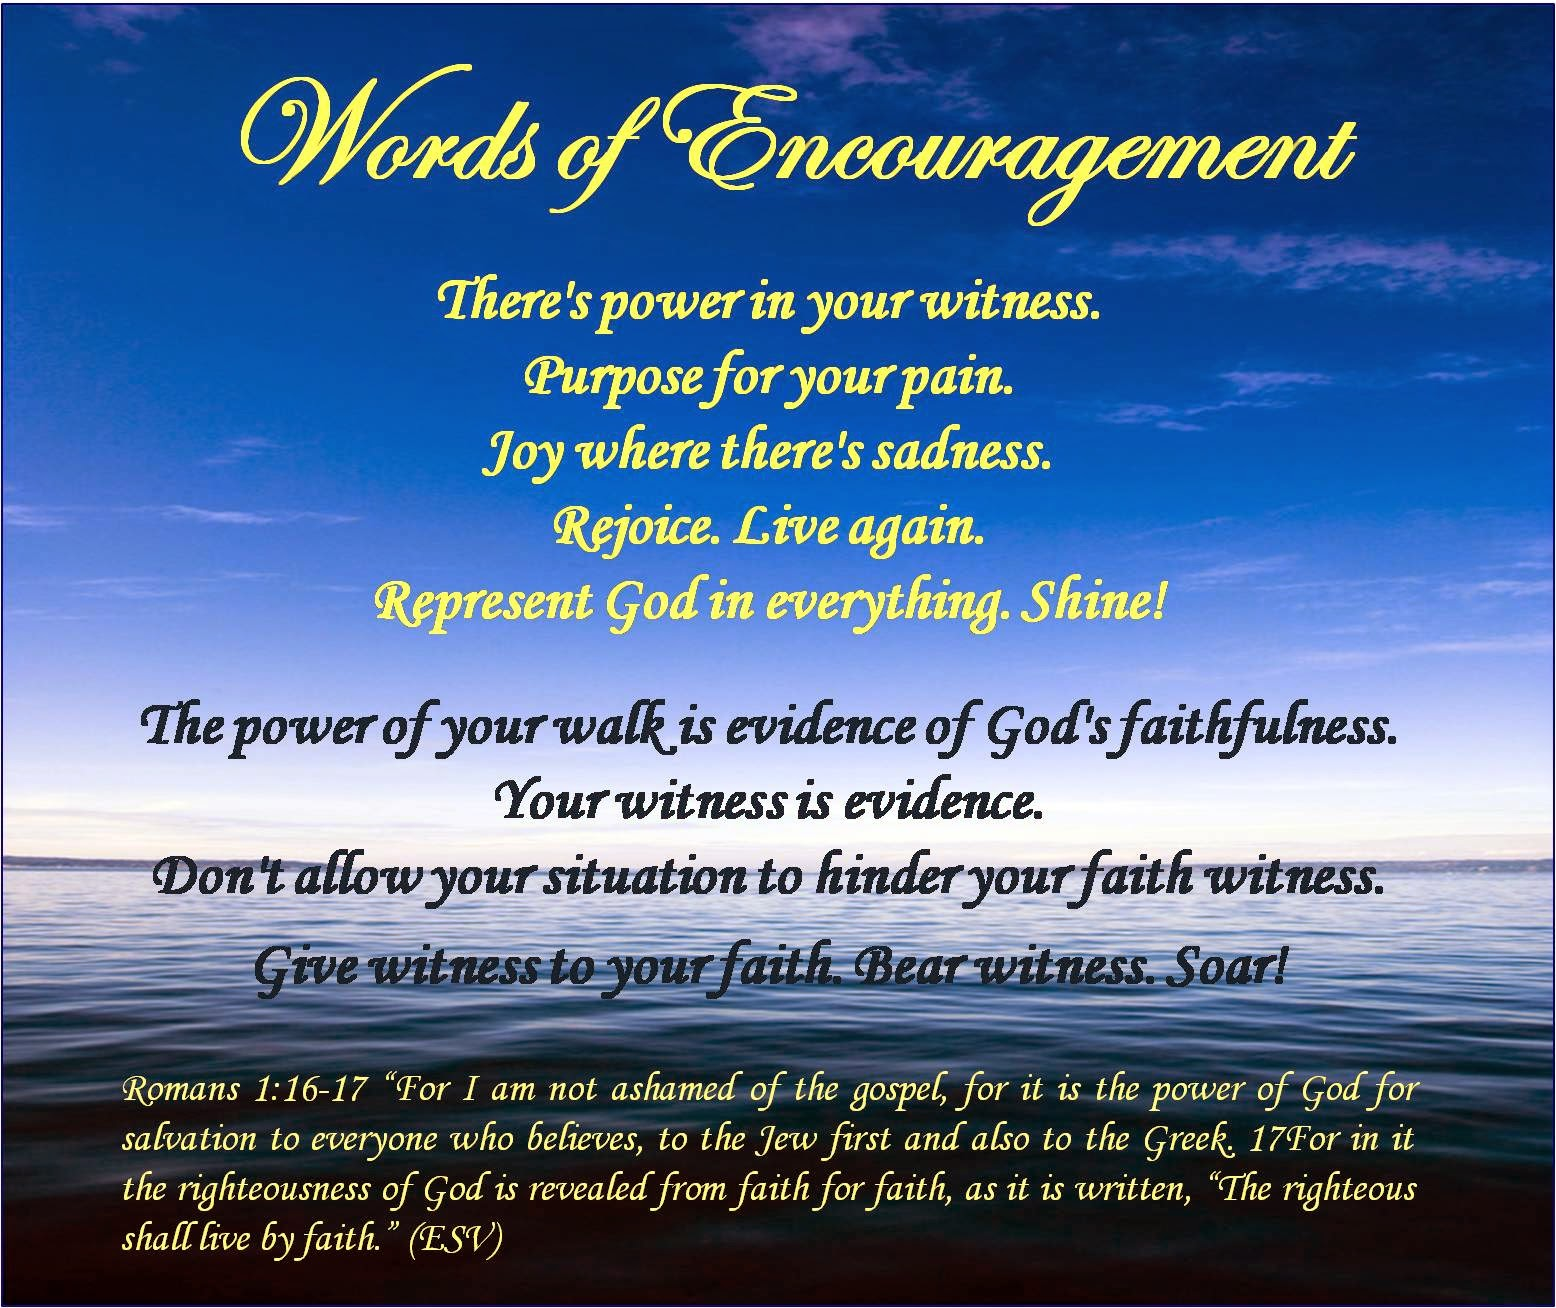 Words of encouragement for saying